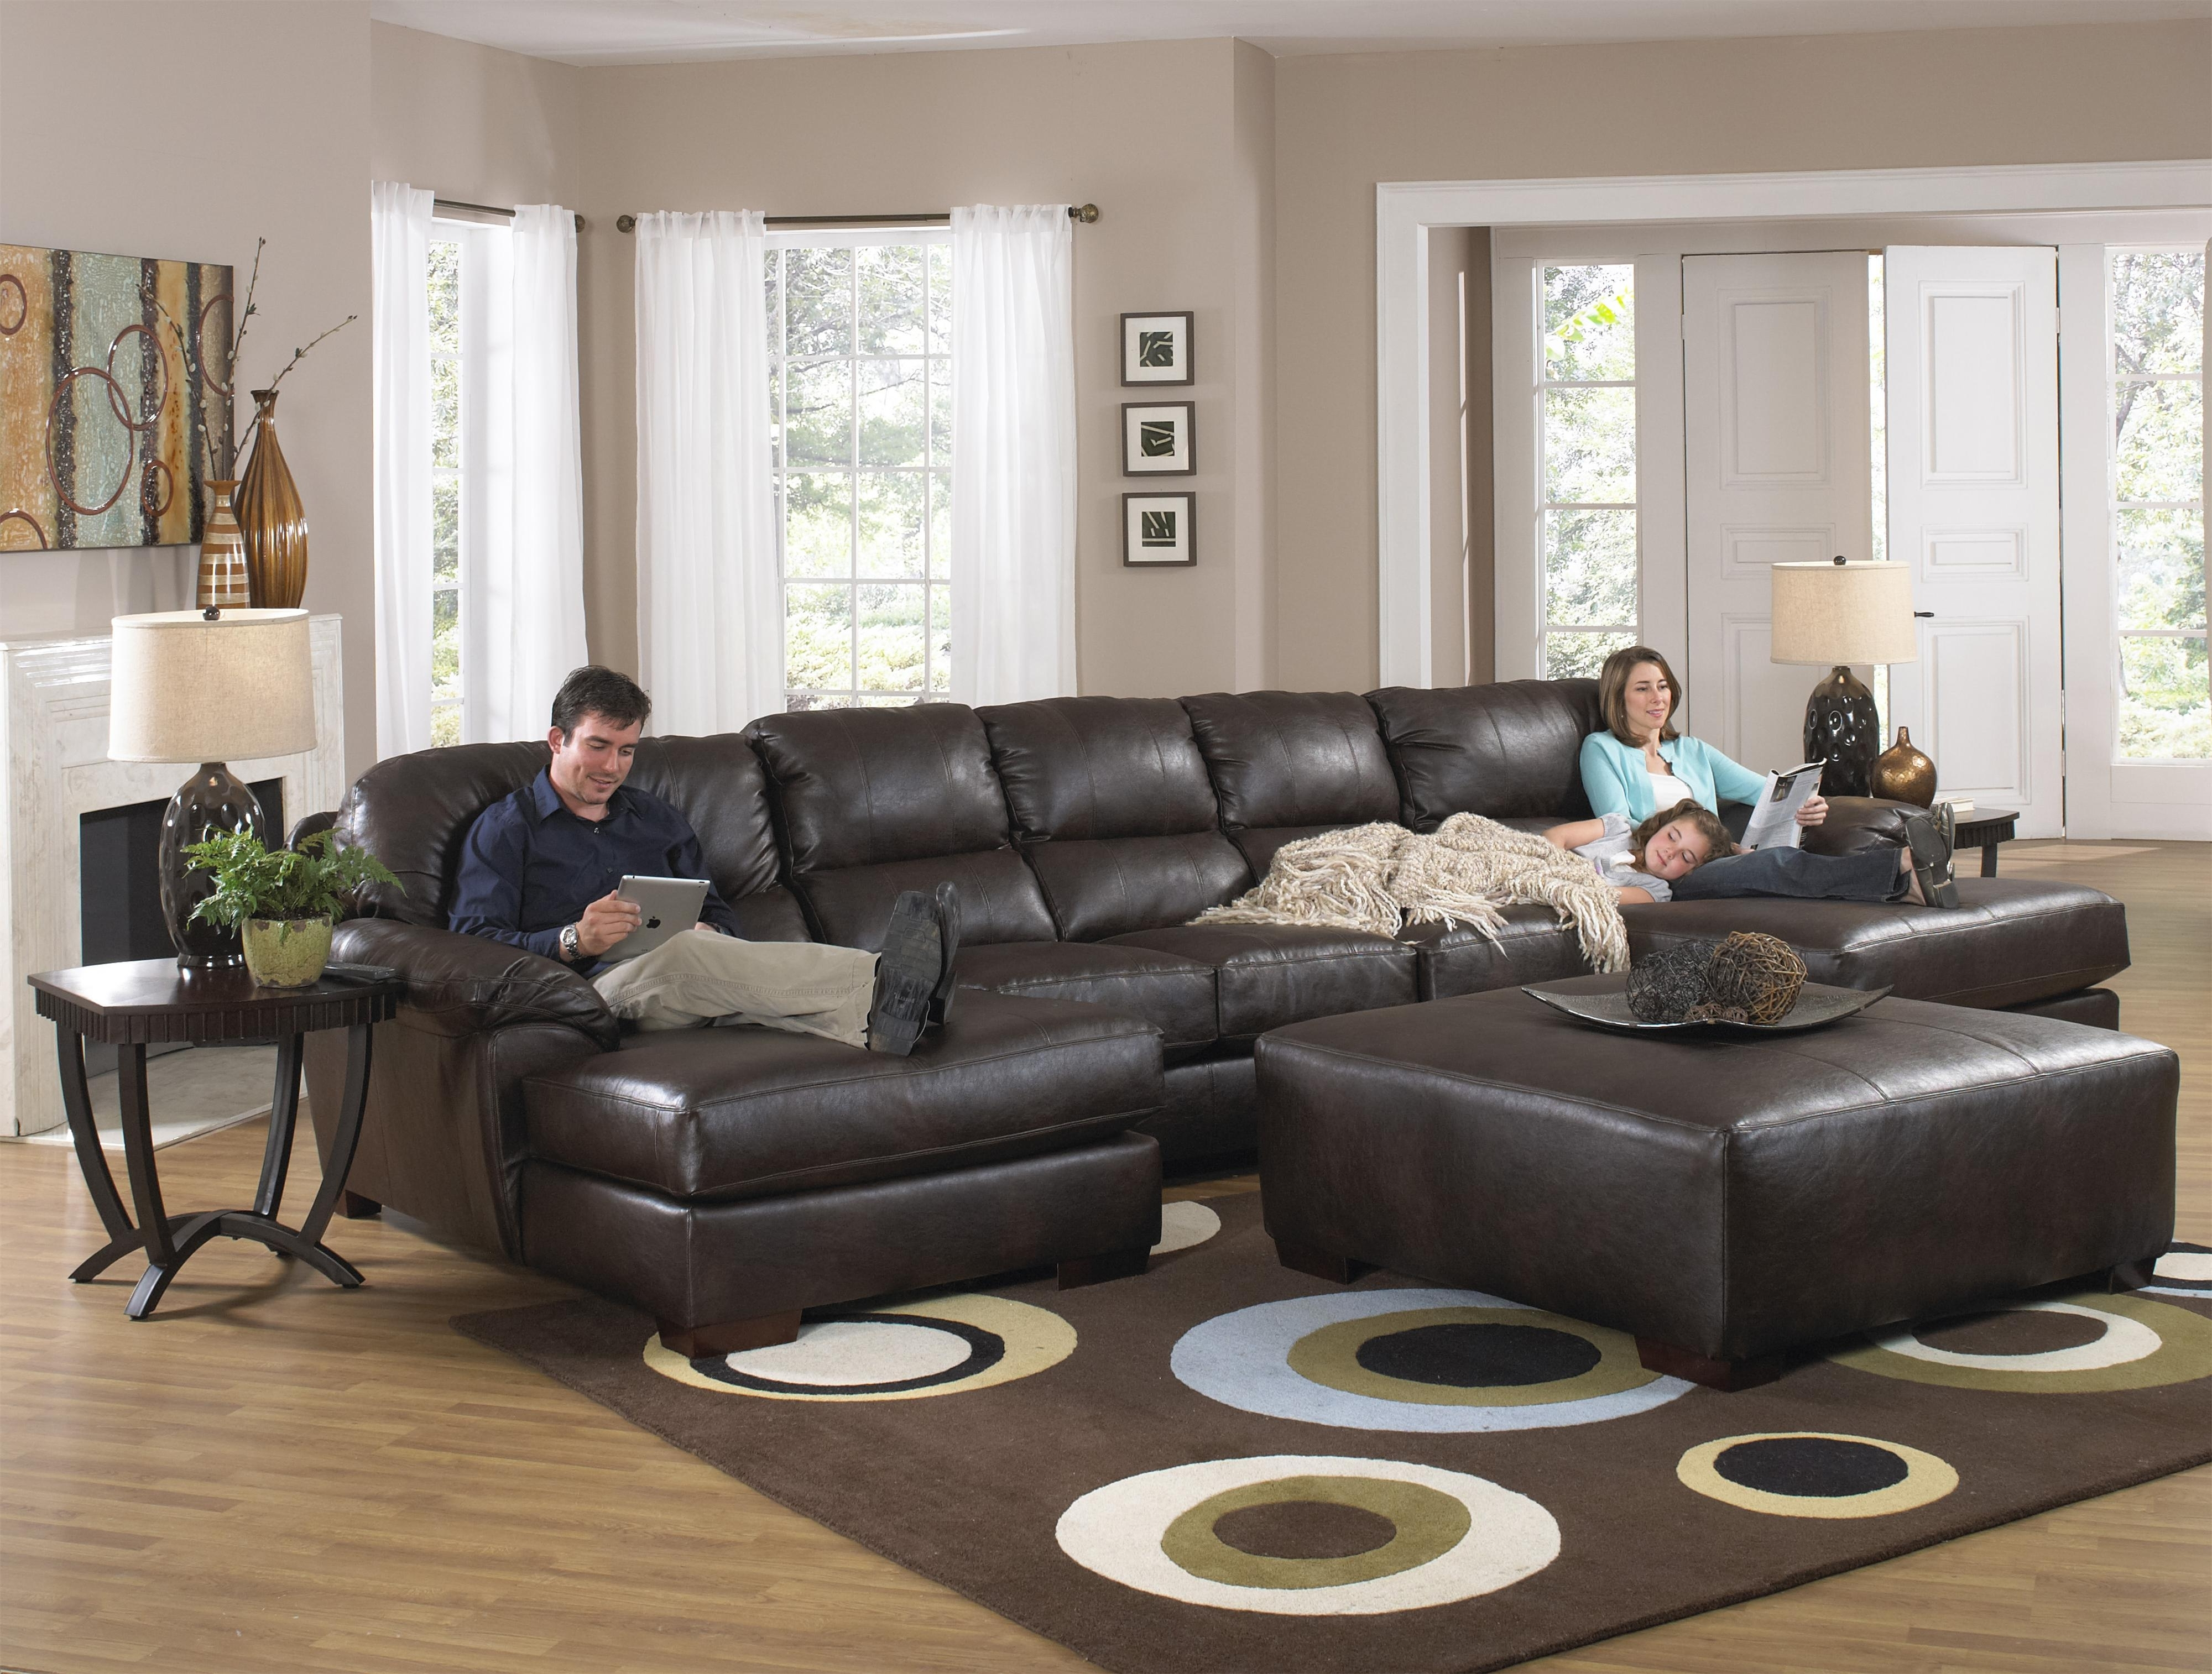 2017 Two Chaise Sectional Sofa With Five Total Seatsjackson With Regard To Sectional Chaise Sofas (View 9 of 15)